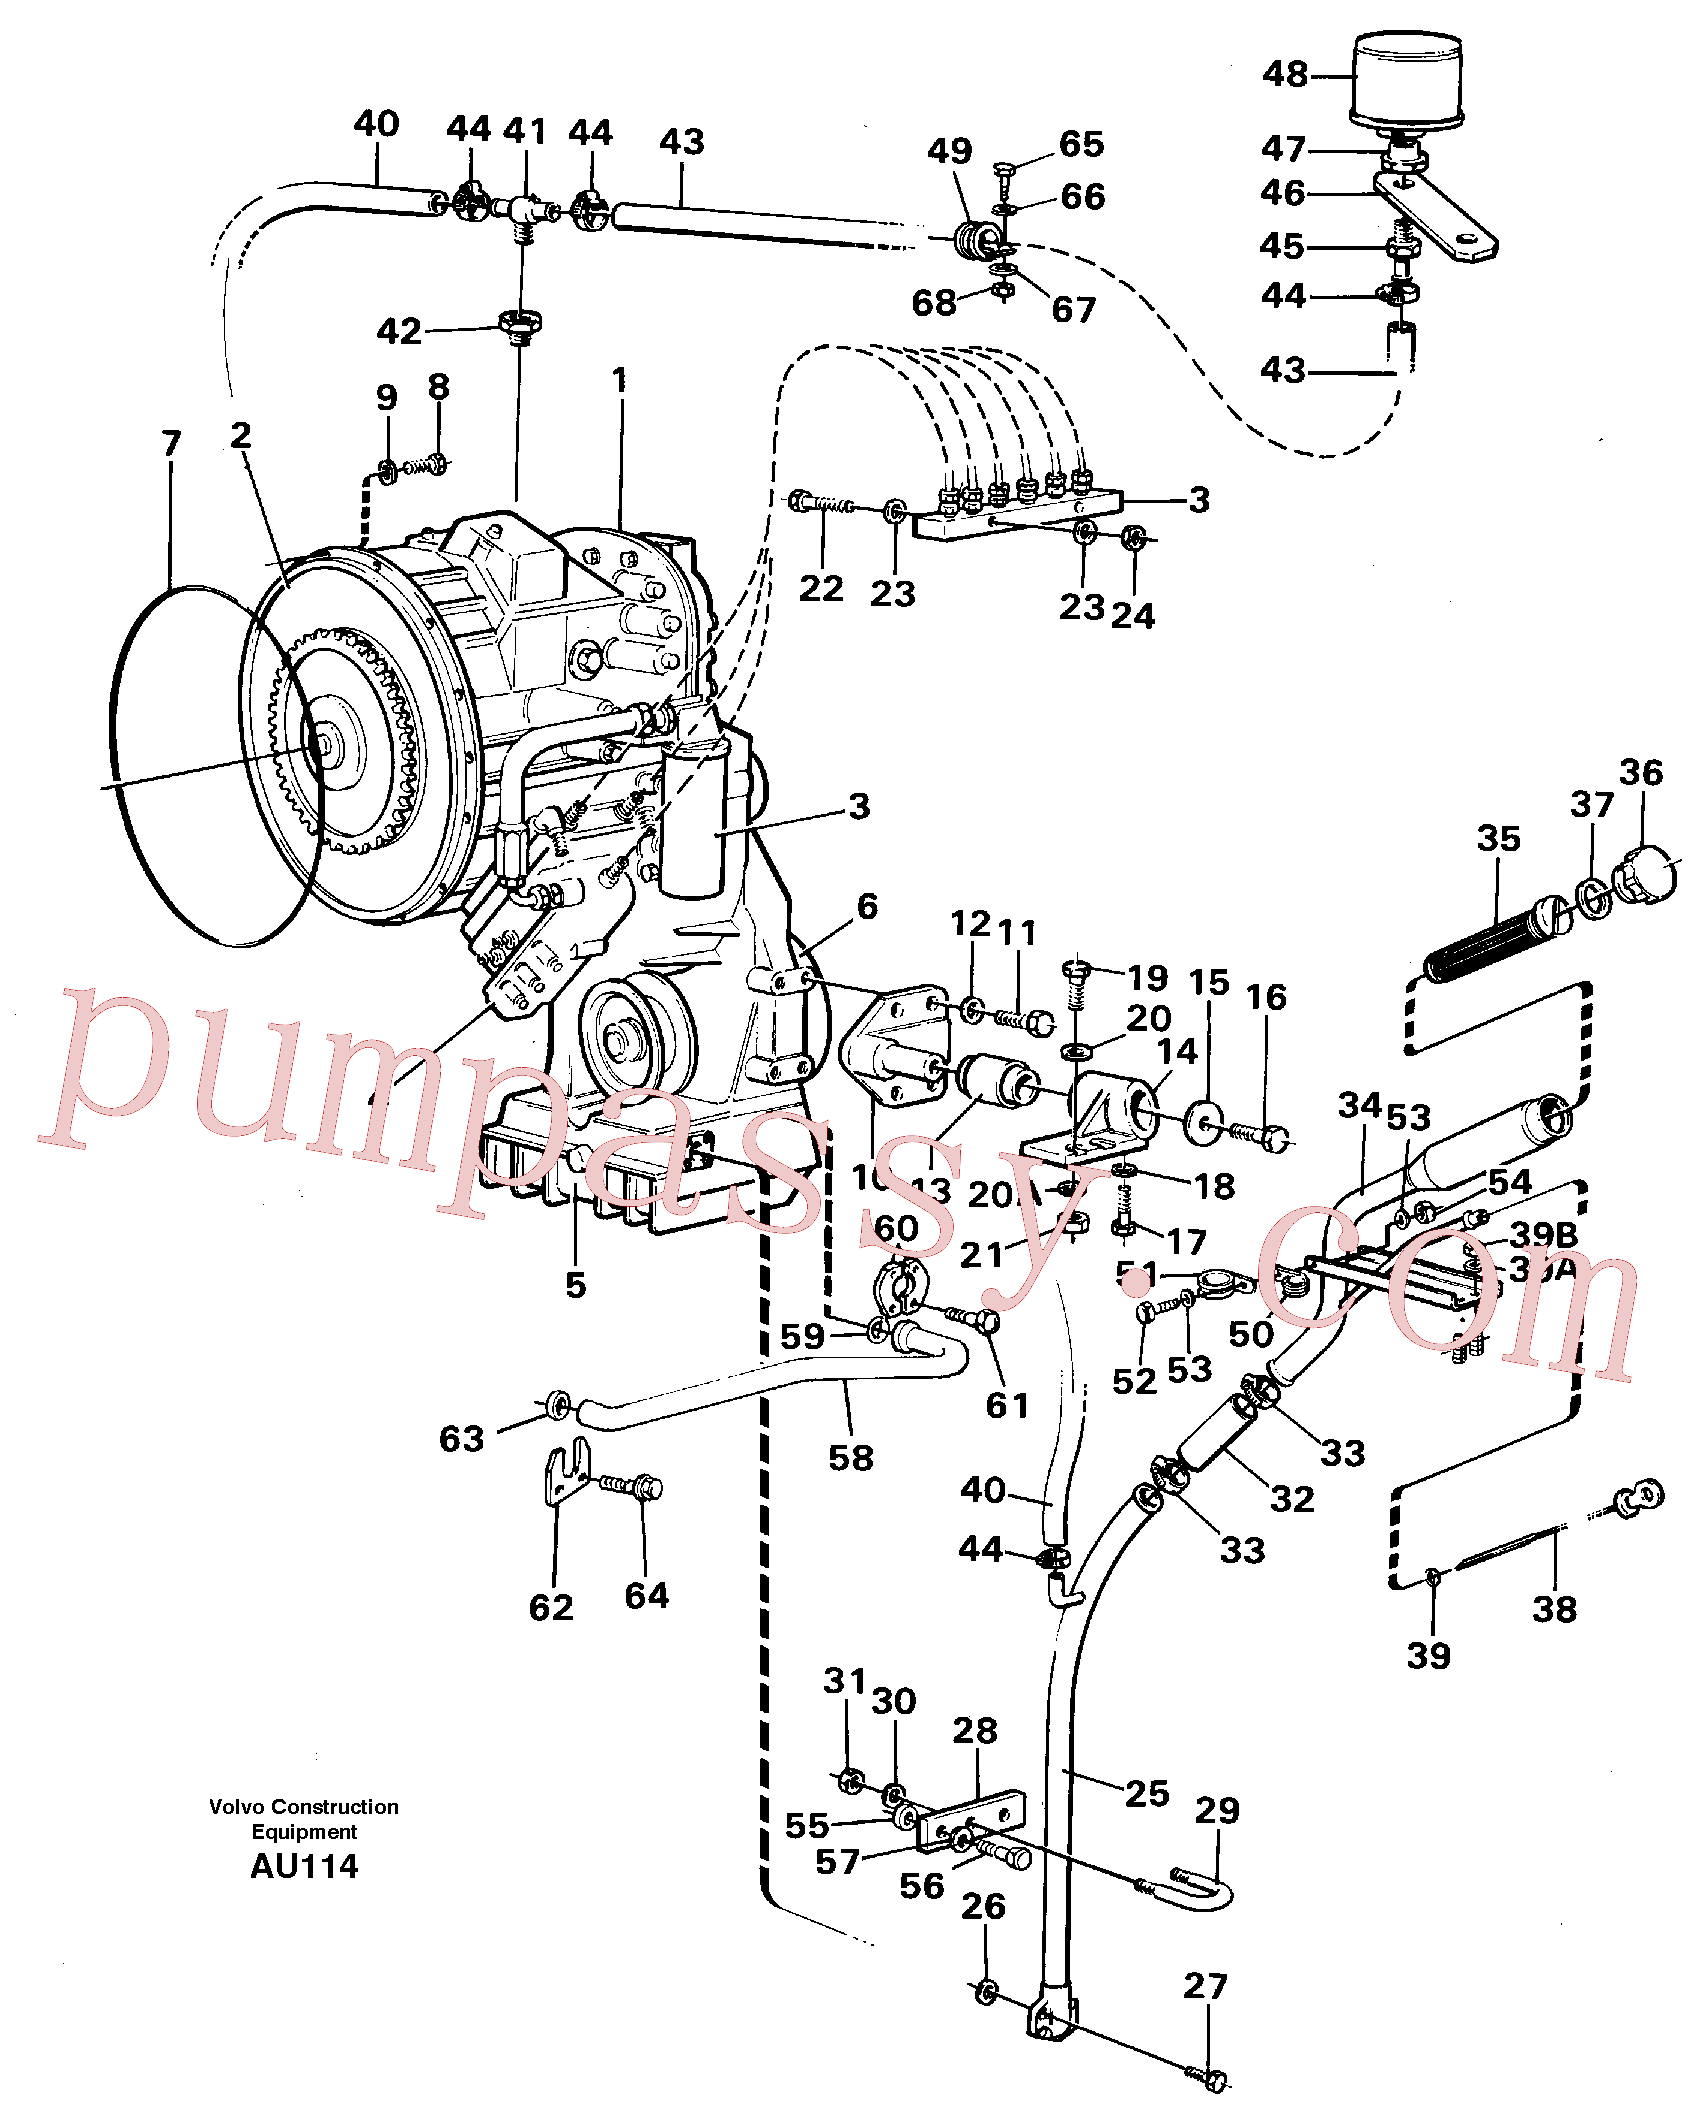 VOE11031769 for Volvo Hydraulic transmission with fitting parts(AU114 assembly)